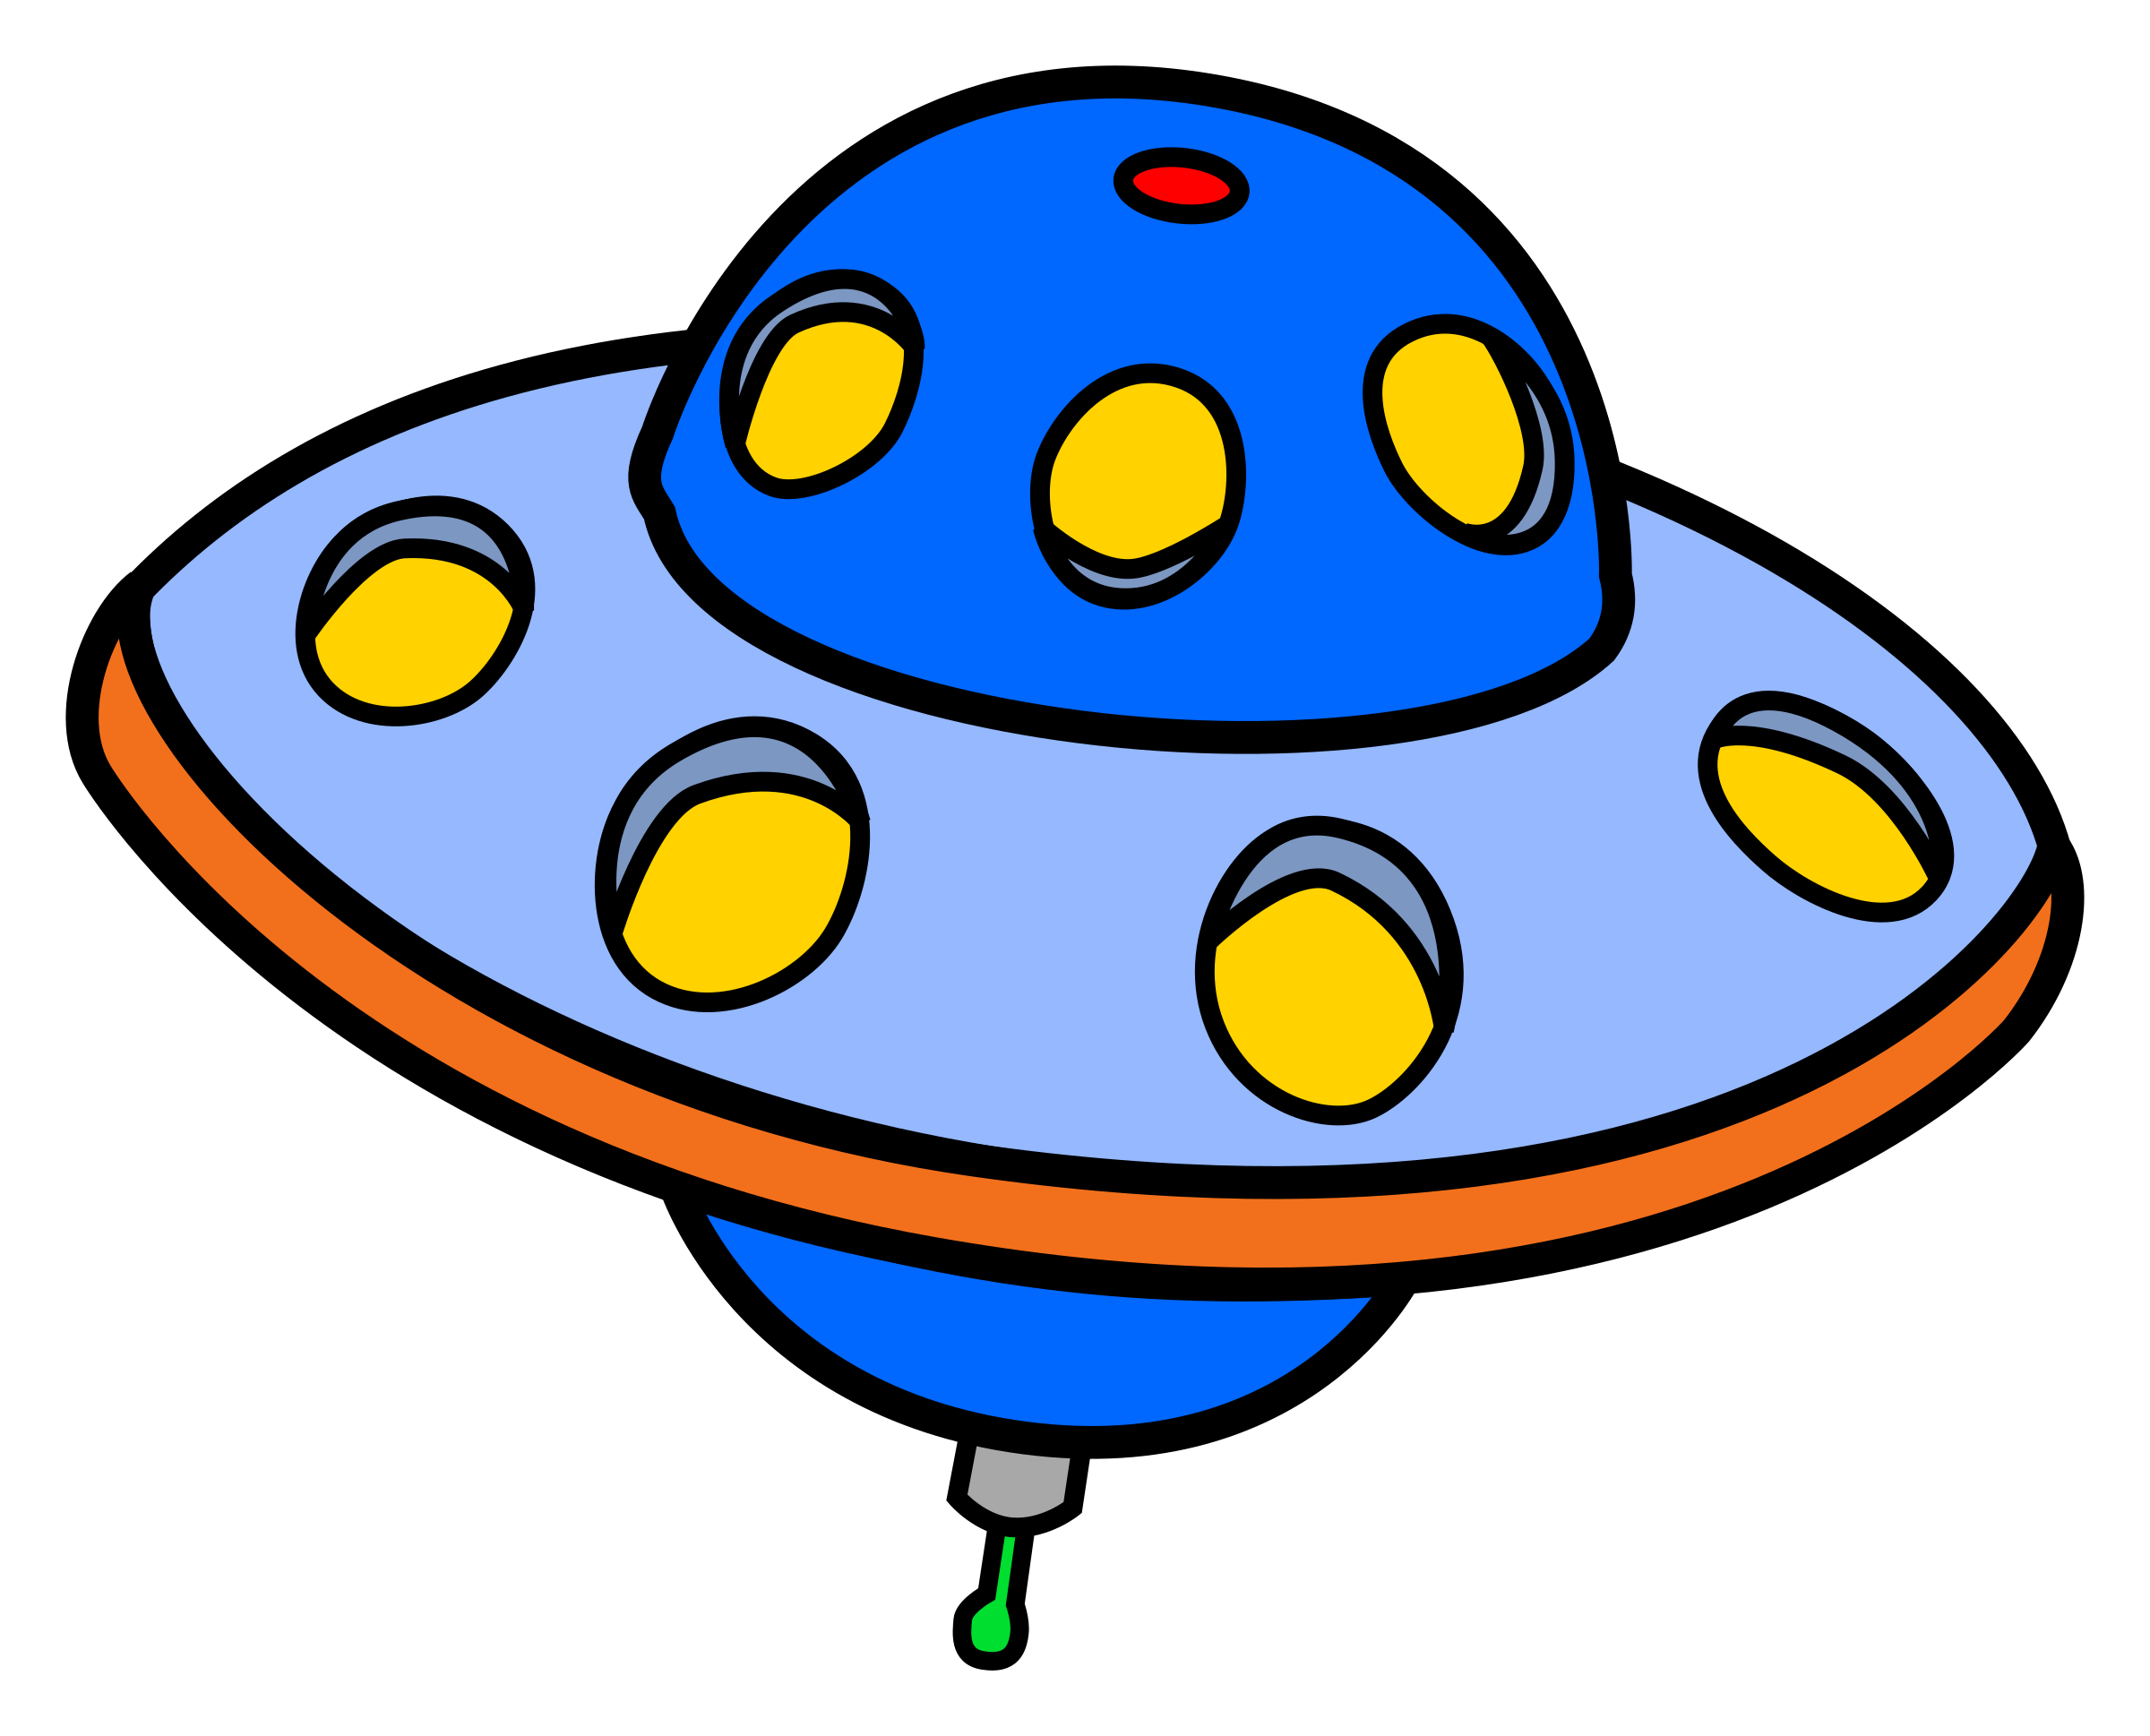 ufo clipart images - photo #21